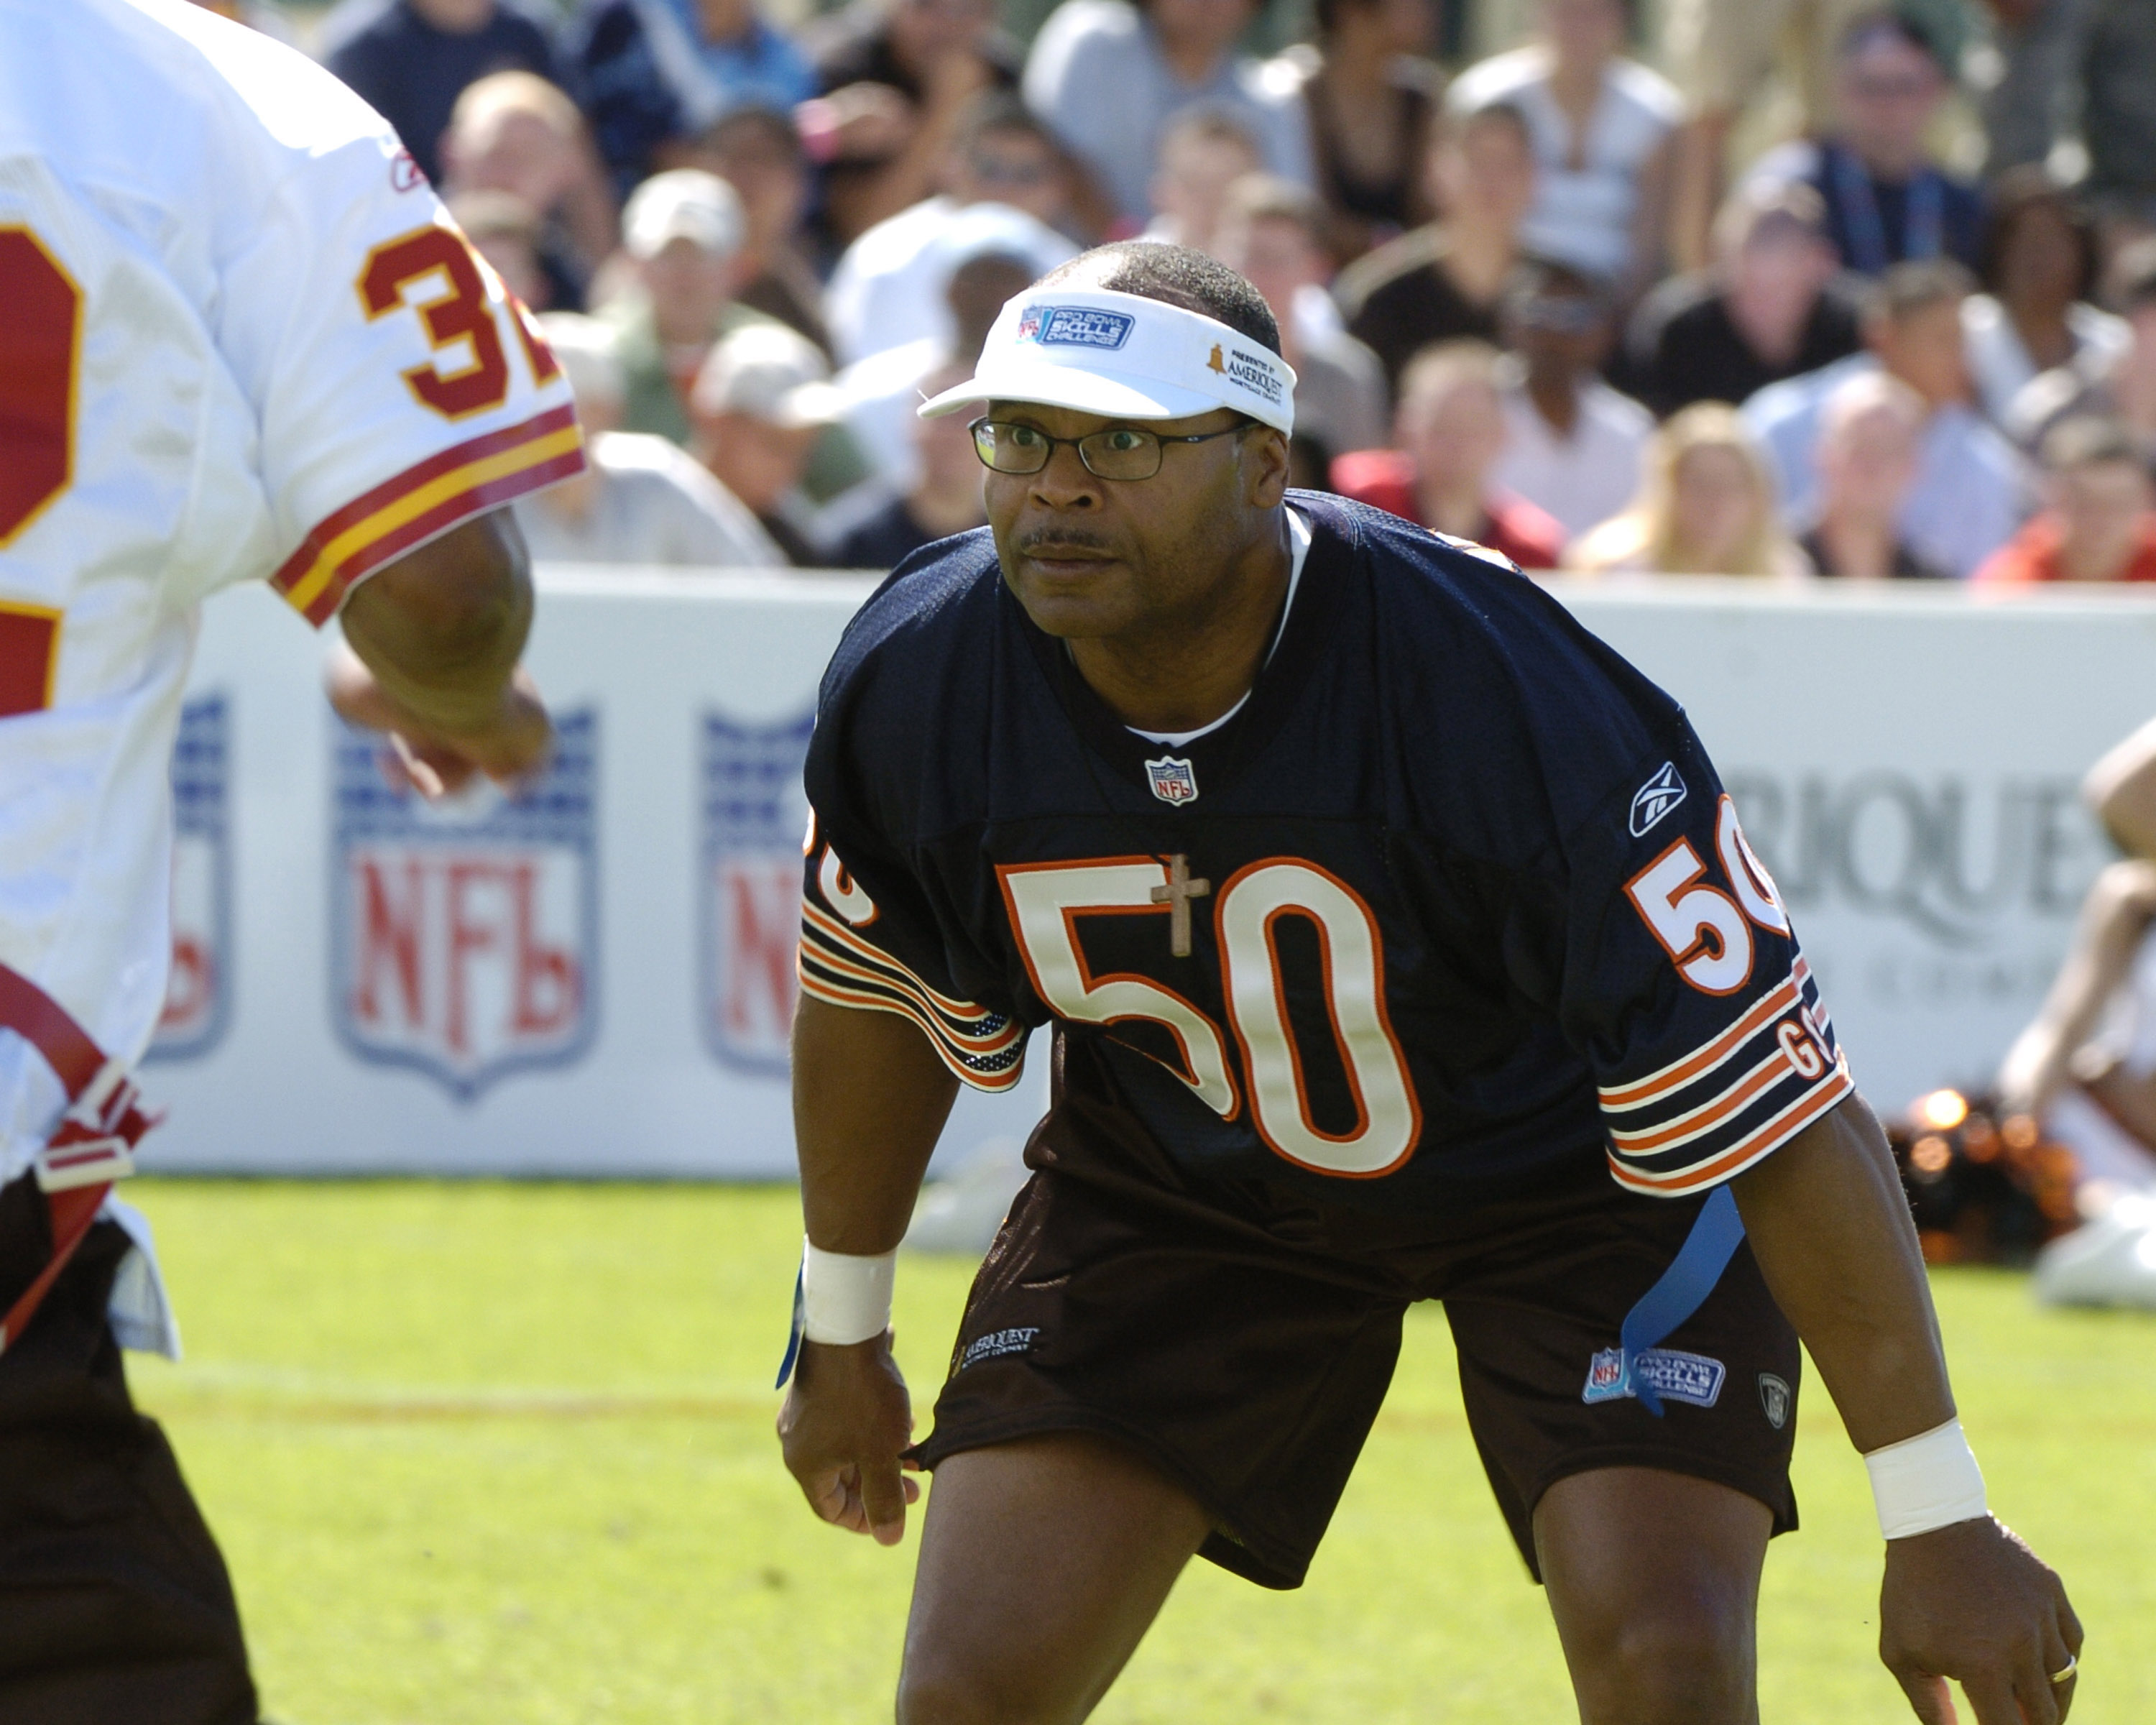 Chicago Bears linebacker Mike Singletary  competes in a flag-football legends  game during 2005 Pro Bowl week in Ko Olina, Honolulu February 11, 2005.  (Photo by Al Messerschmidt/Getty Images)